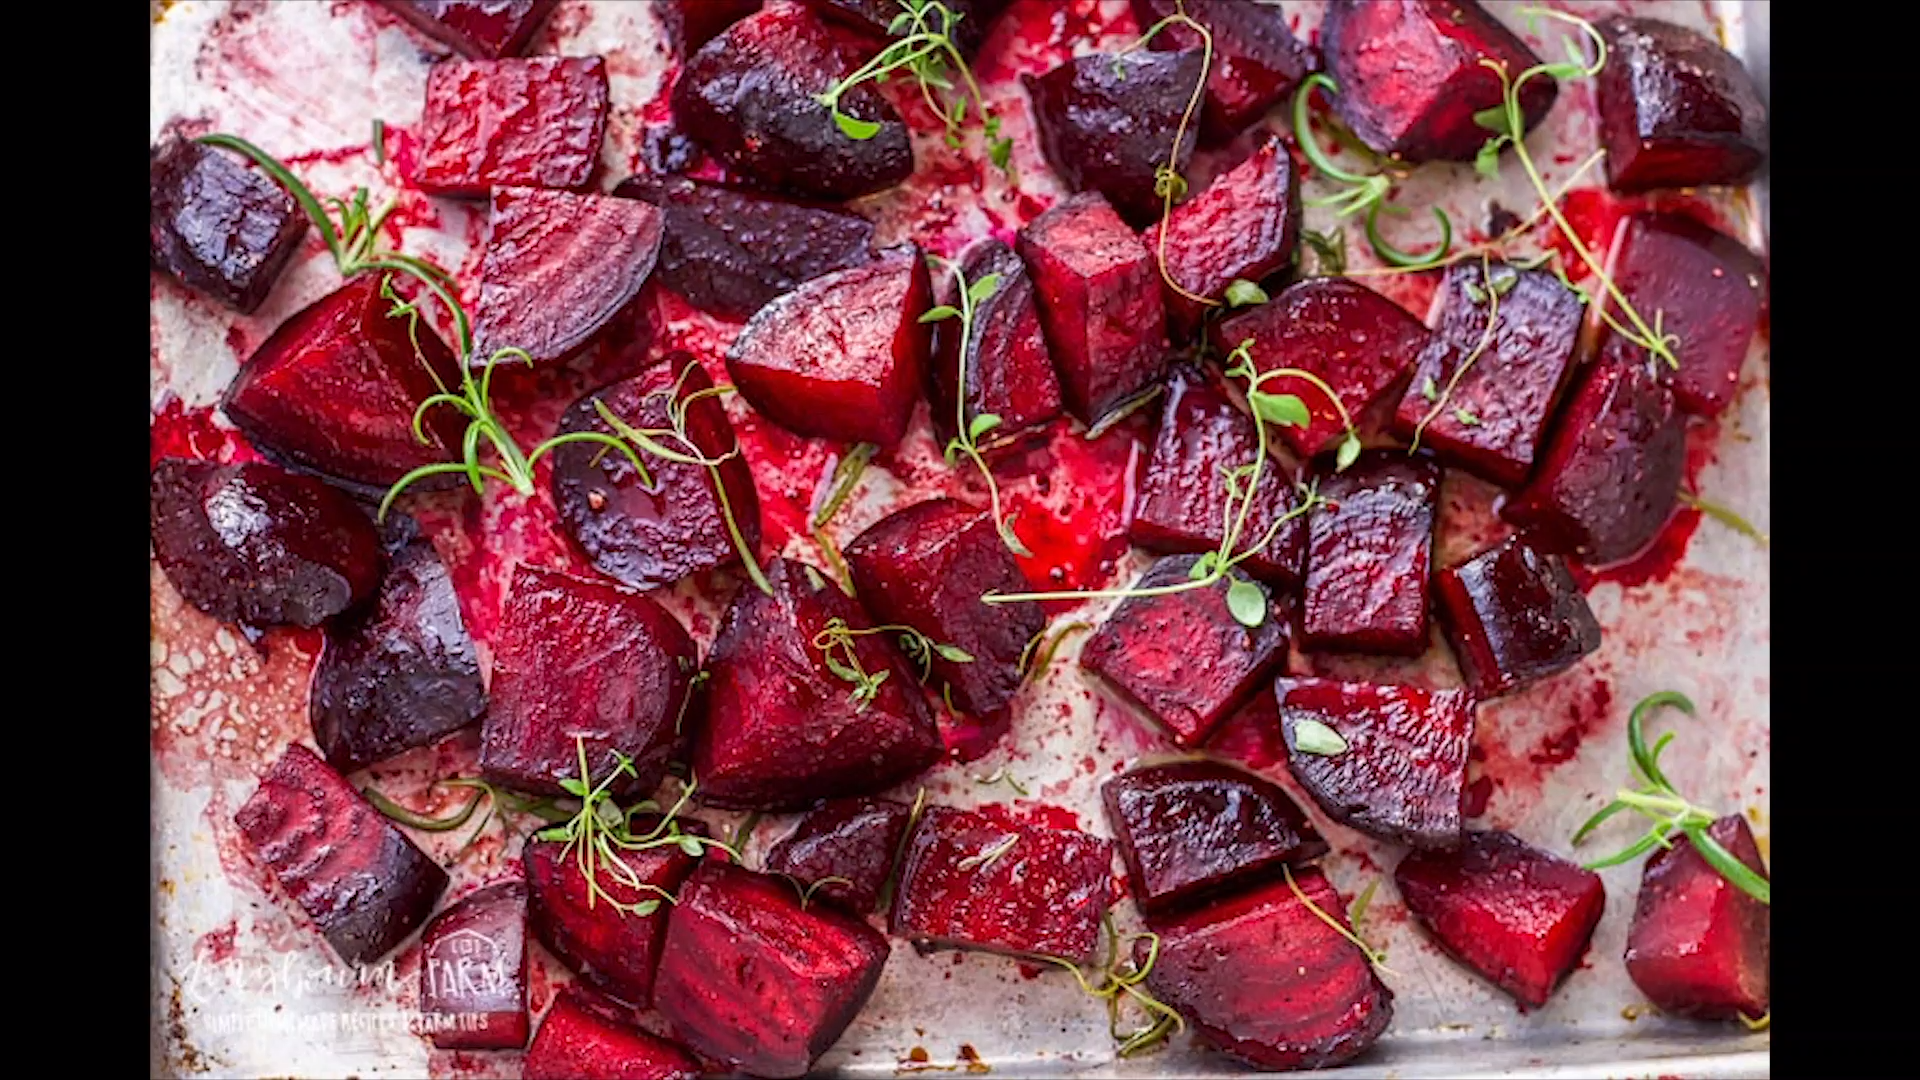 Oven Roasted Beets with Balsamic Glaze